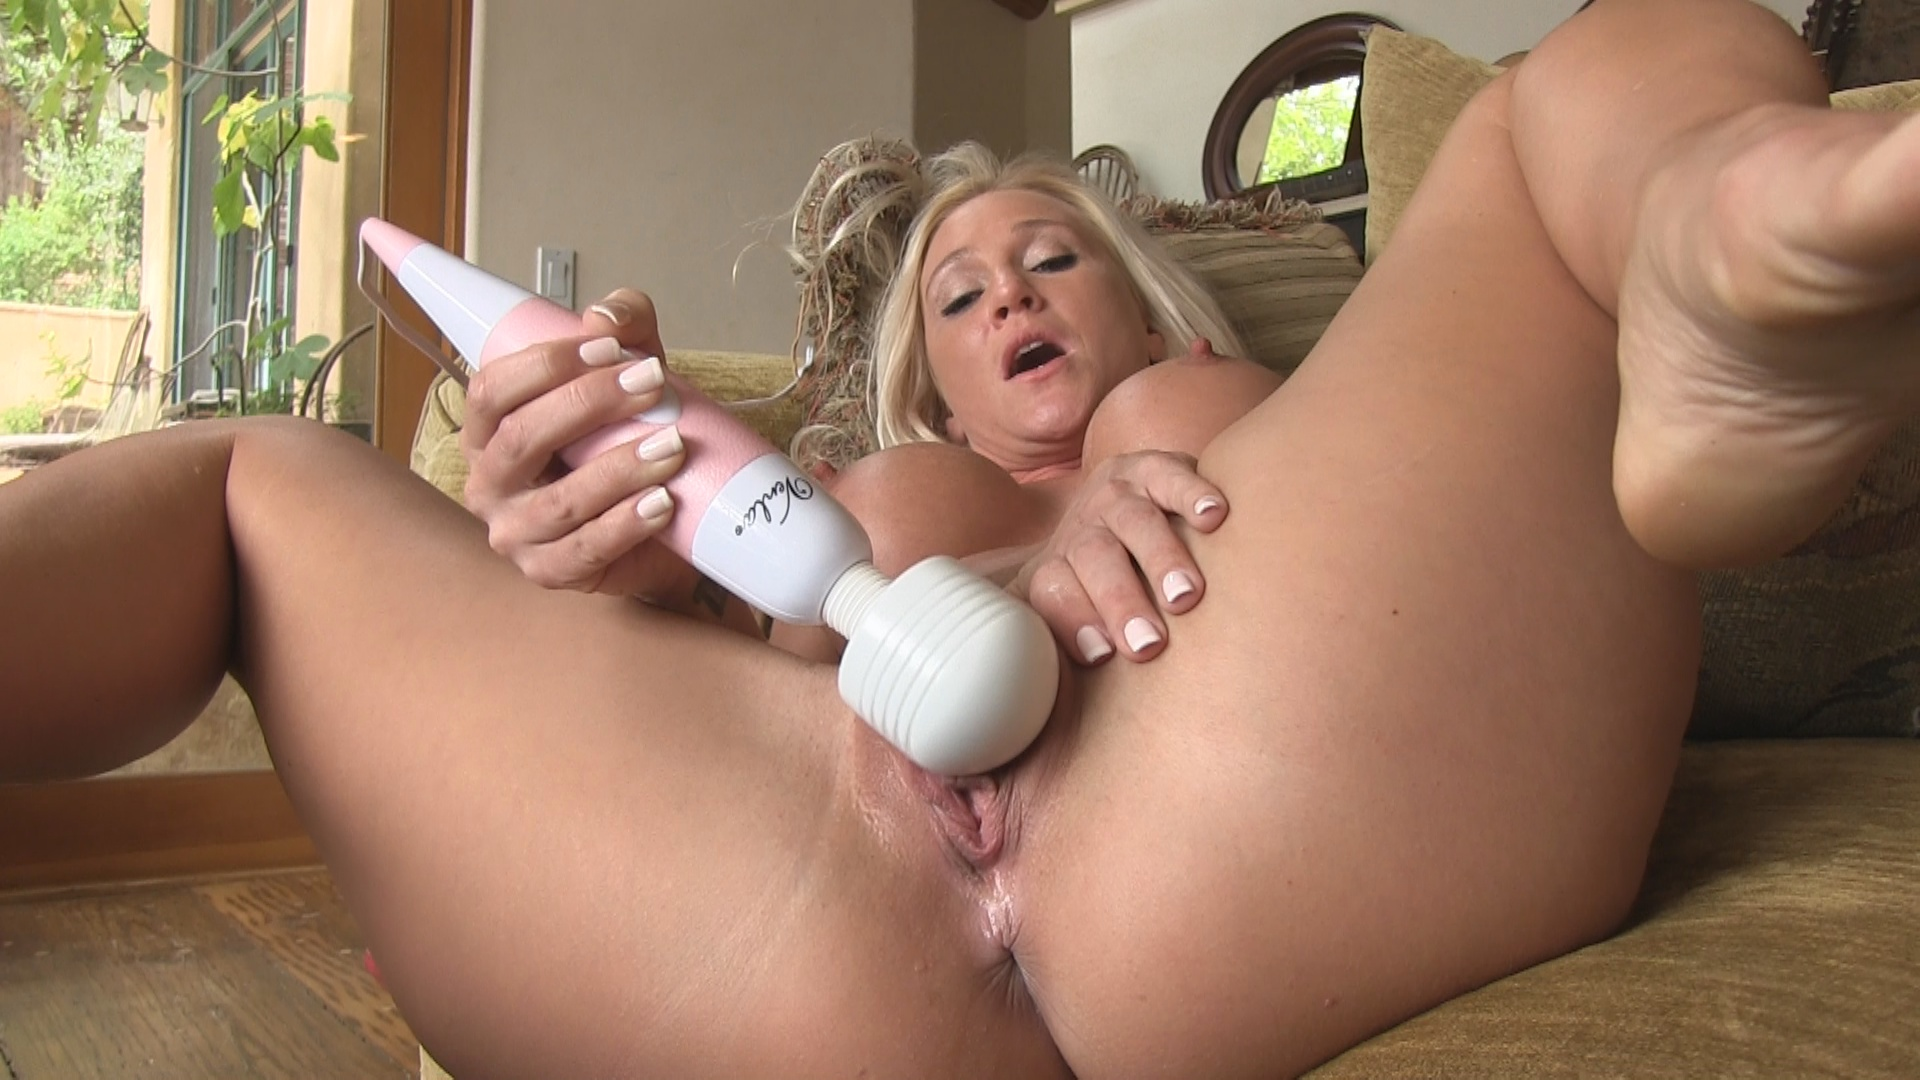 FTV Milfs Alexis Masturbating with Magic Wand